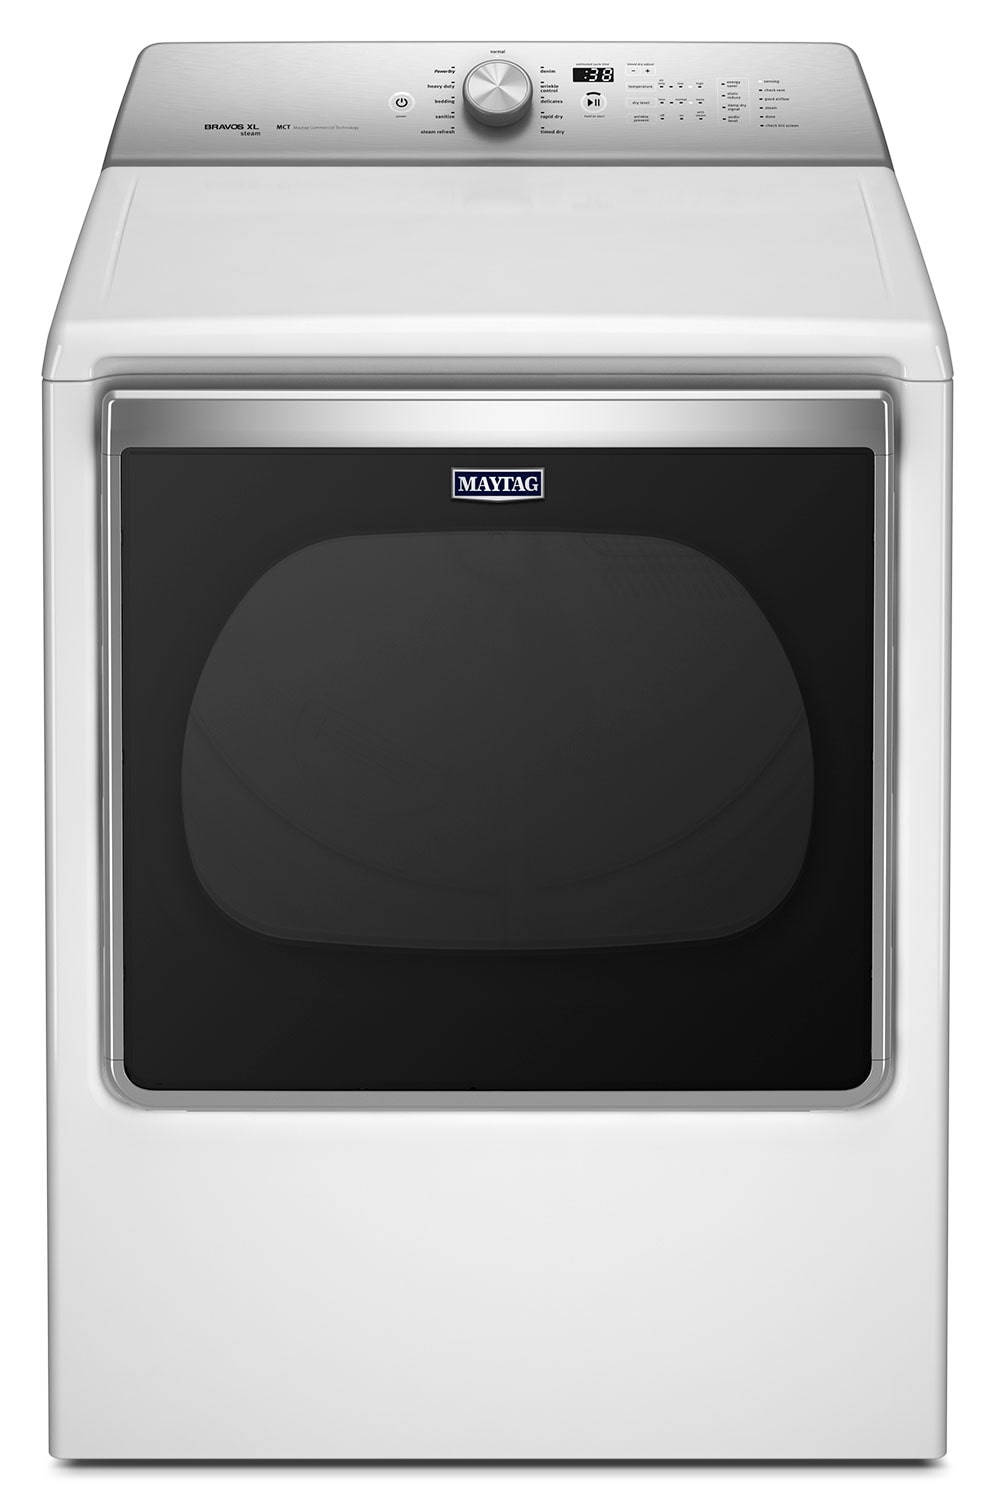 Washers and Dryers - Maytag Gas Dryer (8.8 Cu. Ft.) MGDB855DW